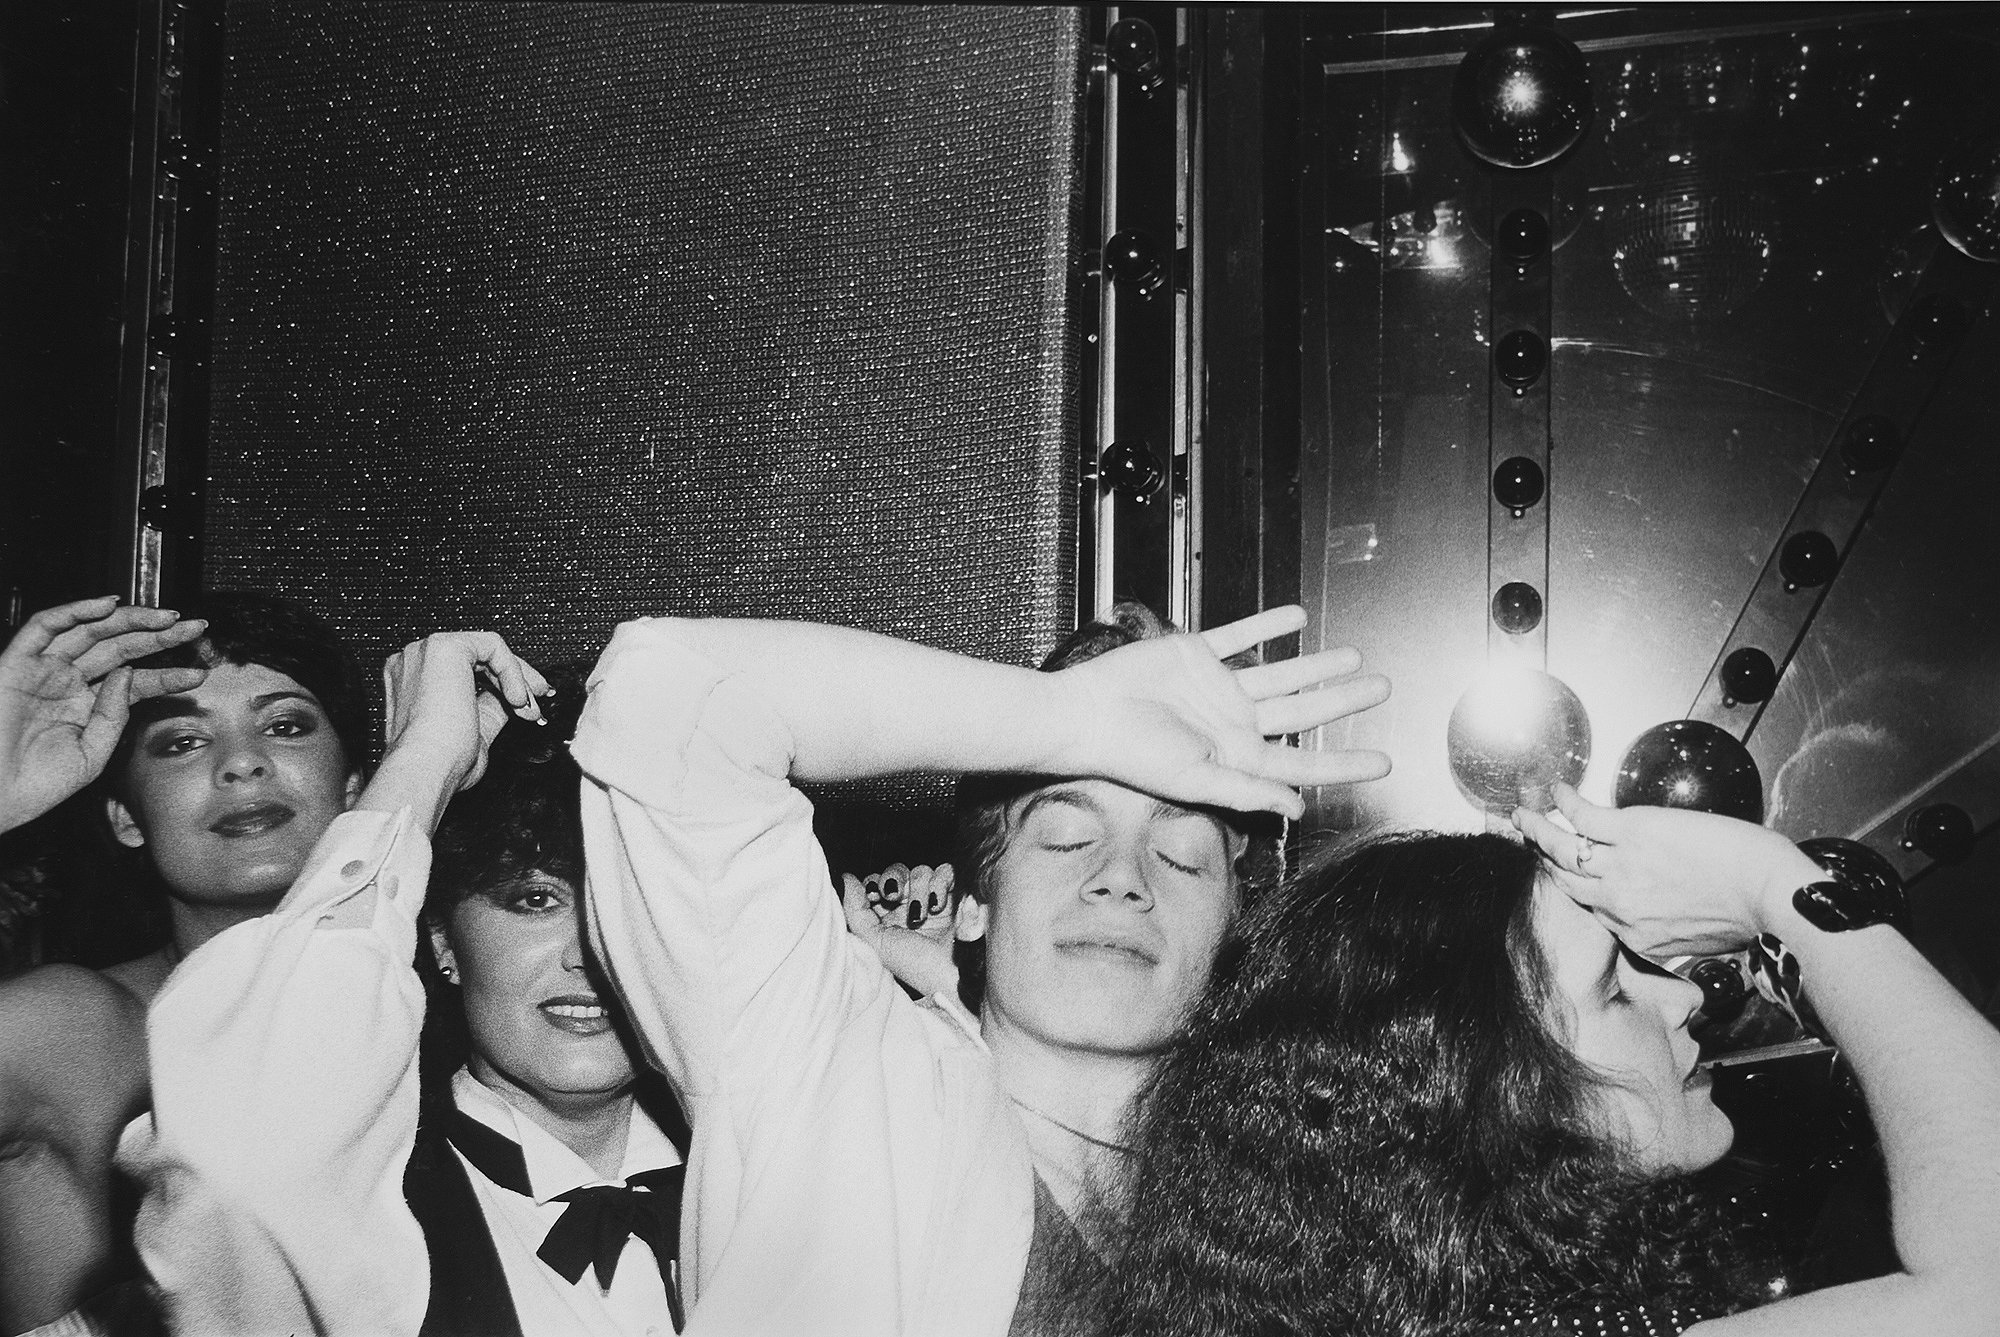 Tony_Ward_photography_early_work_Night_Fever_portfolio_1970's_erotic_dirty_dancing_couples_grinding_group_portraits